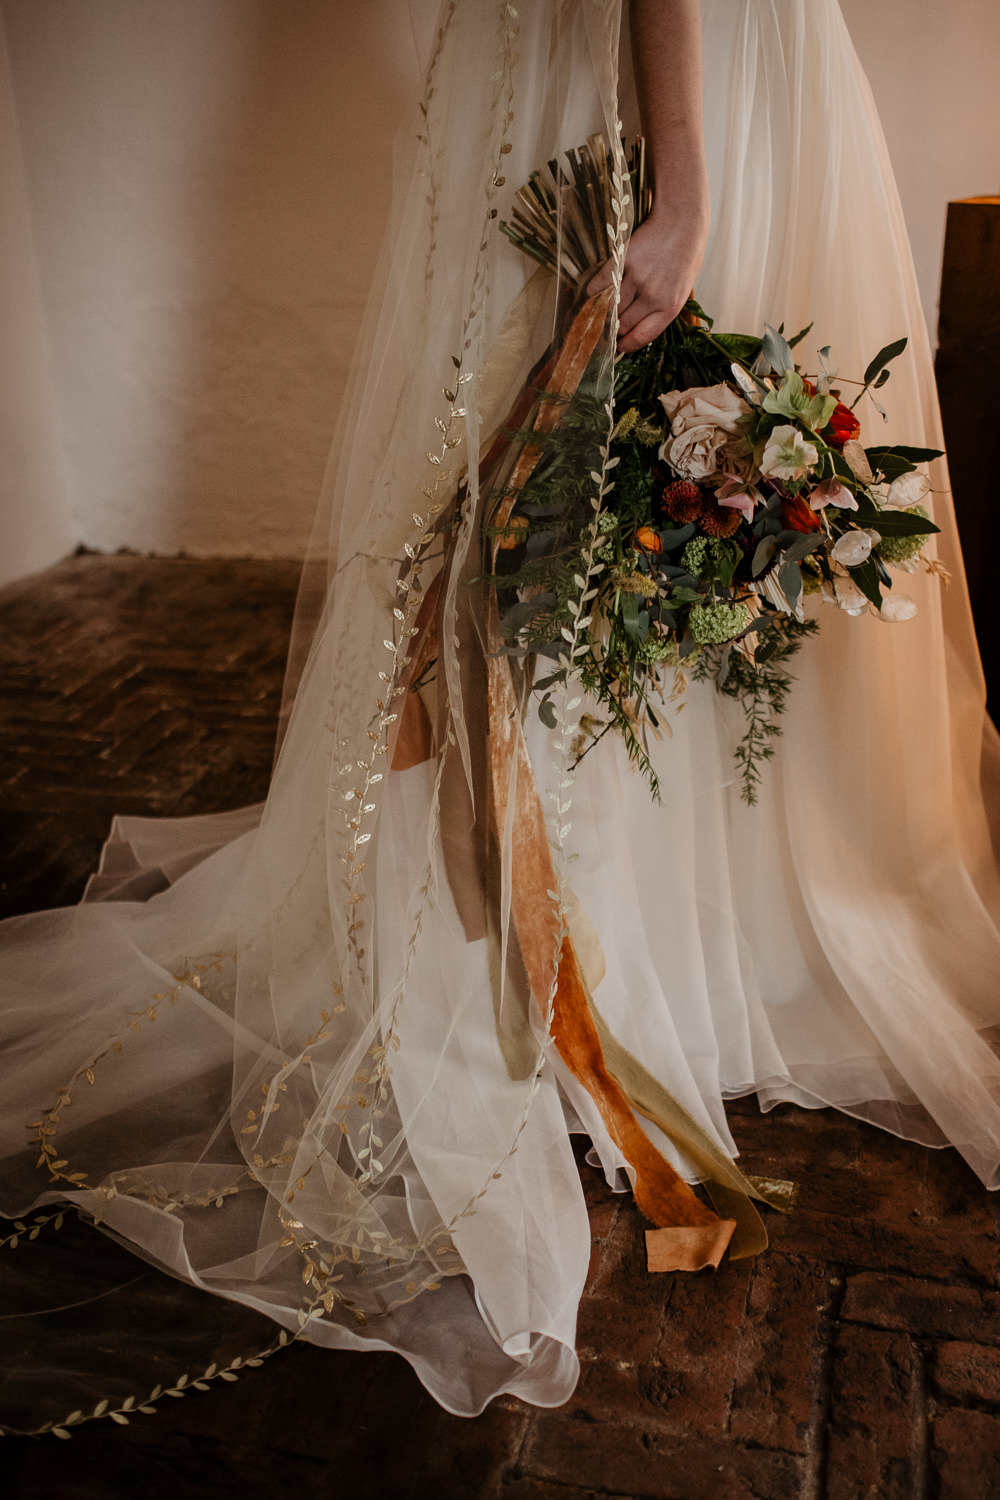 Bouquet Flowers Bride Bridal Ribbons Orange Rose Dried Flowers Seed Heads Large Oversized Autumn Fall Elopement Wedding Ideas Oilvejoy Photography